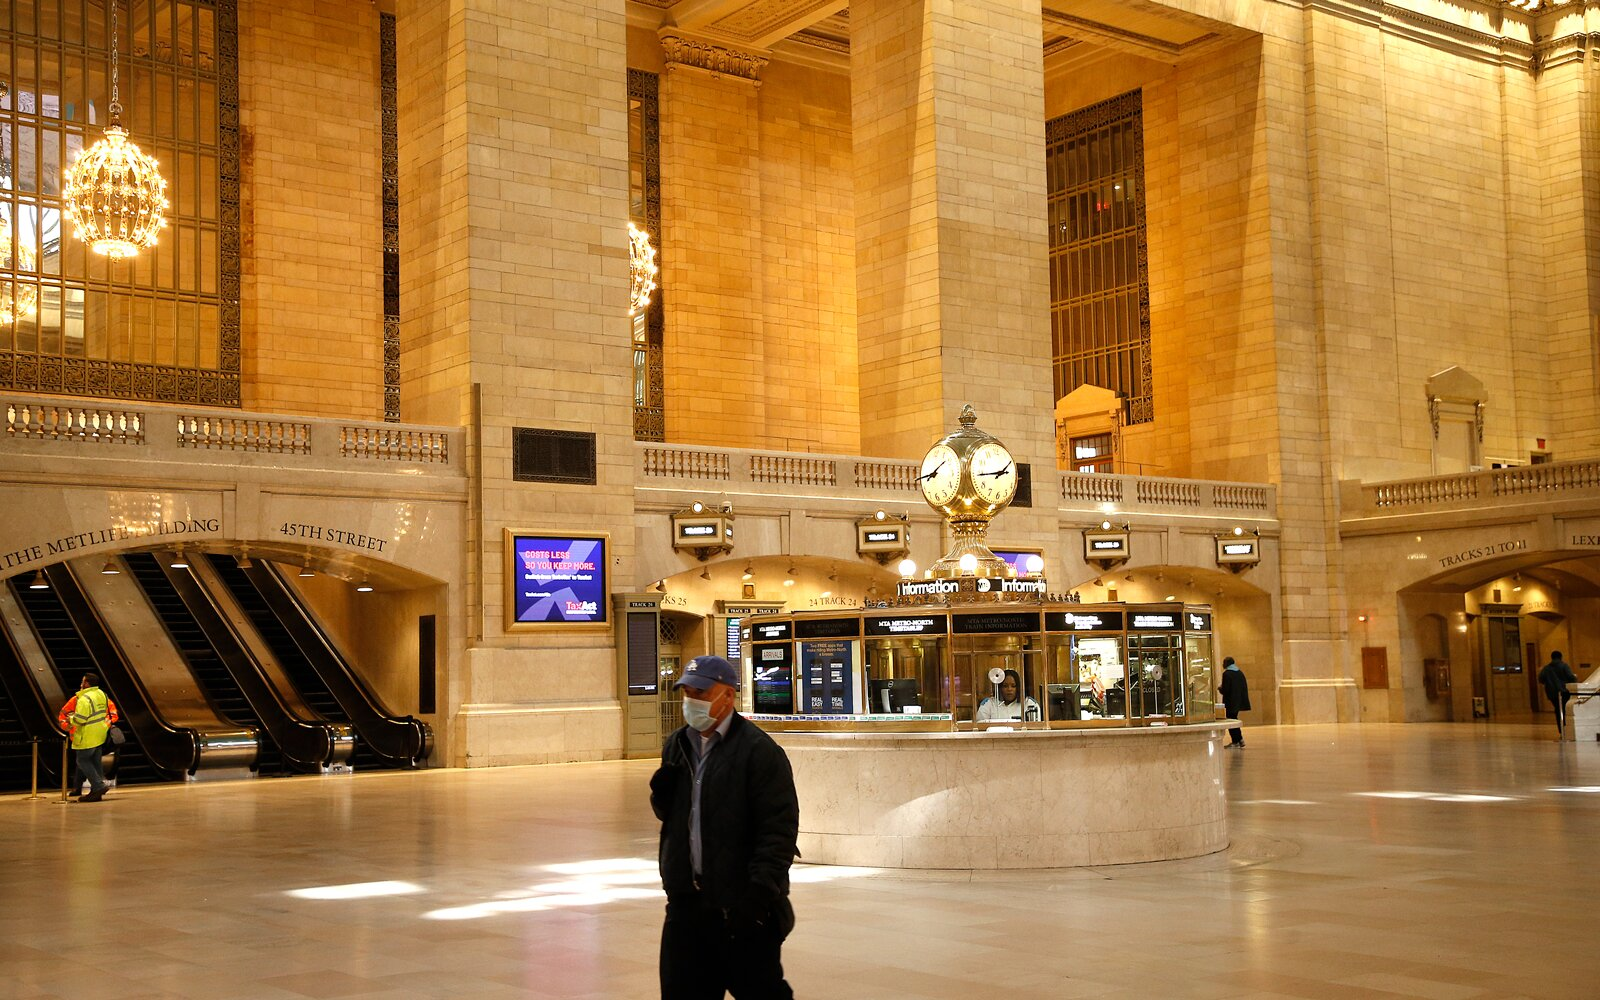 Grand Central Terminal is nearly empty amid the coronavirus pandemic on April 5, 2020 in New York City.